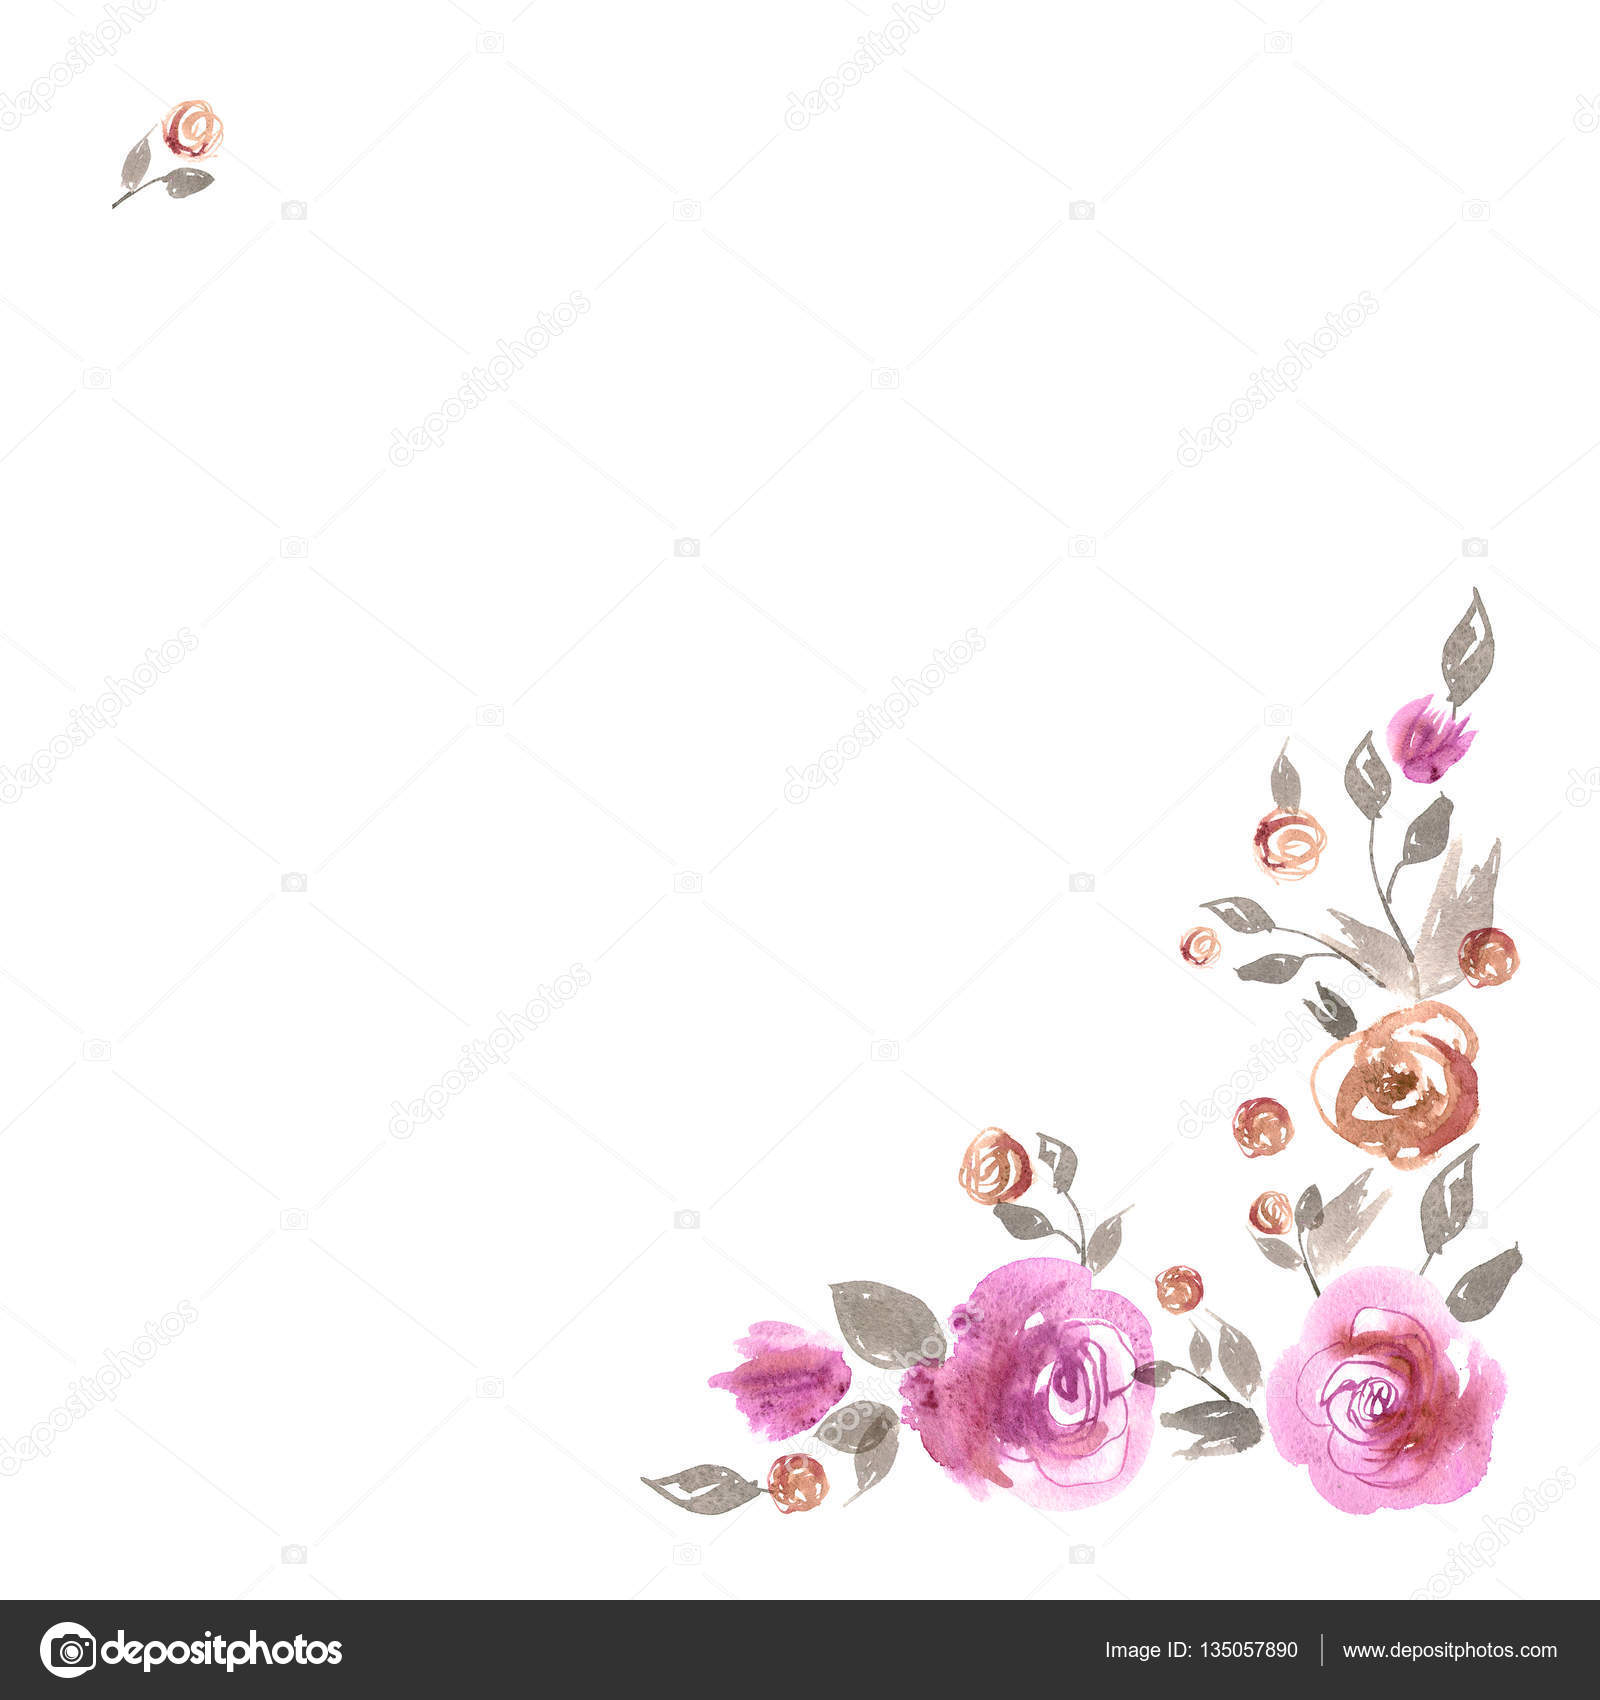 Cute Watercolor Flower Border Background With Pink Roses